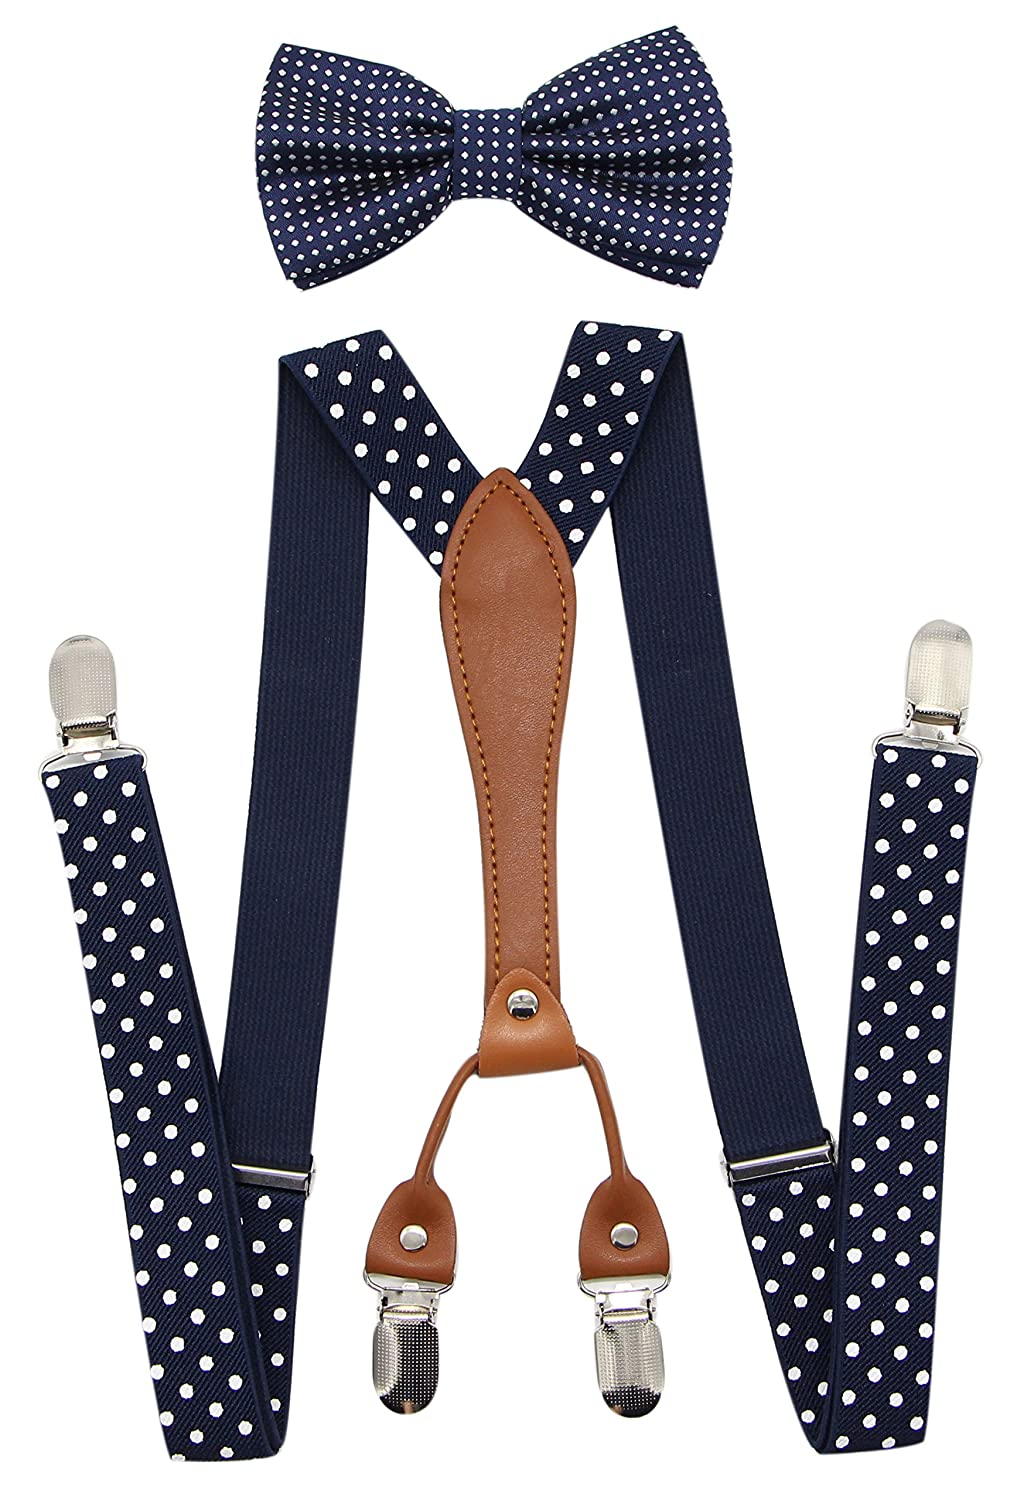 Retro Clothing for Men | Vintage Men's Fashion JAIFEI Suspenders & Bowtie Set- Mens Elastic X Band Suspenders + Bowtie For Wedding Formal Events $10.99 AT vintagedancer.com